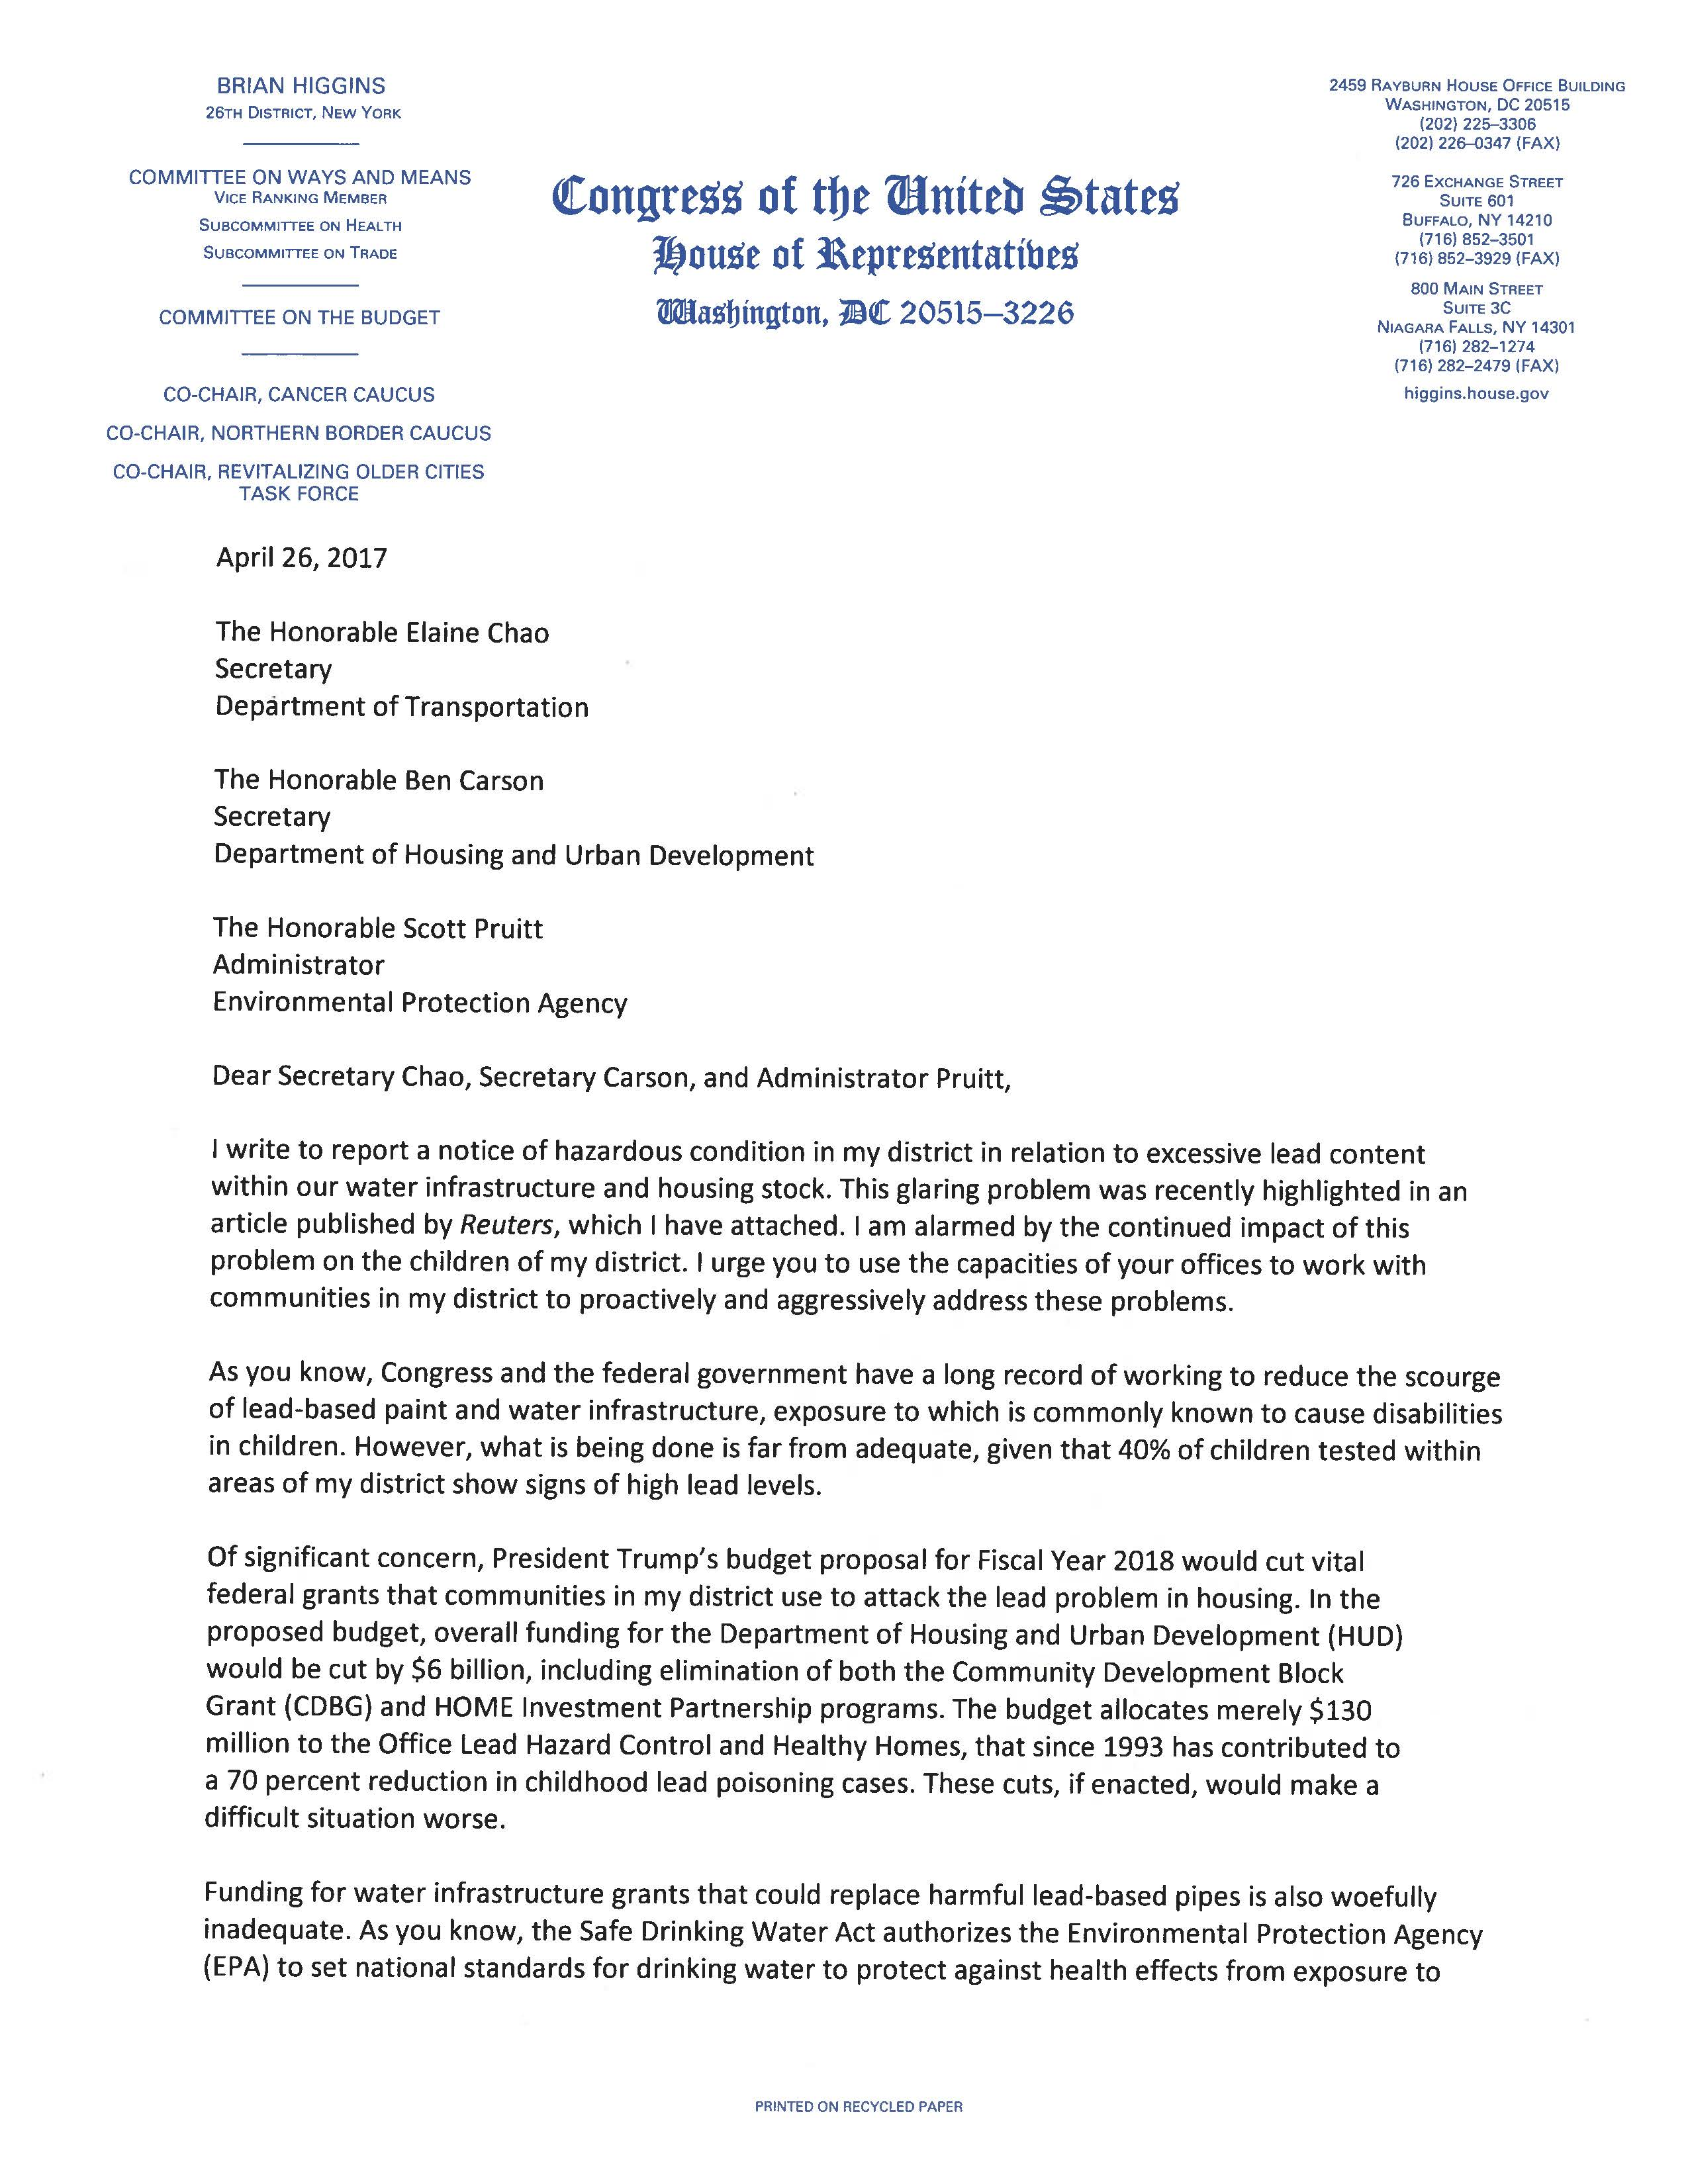 What Does C O Mean On A Letter.Letter To Dot Hud And Epa Congressman Brian Higgins